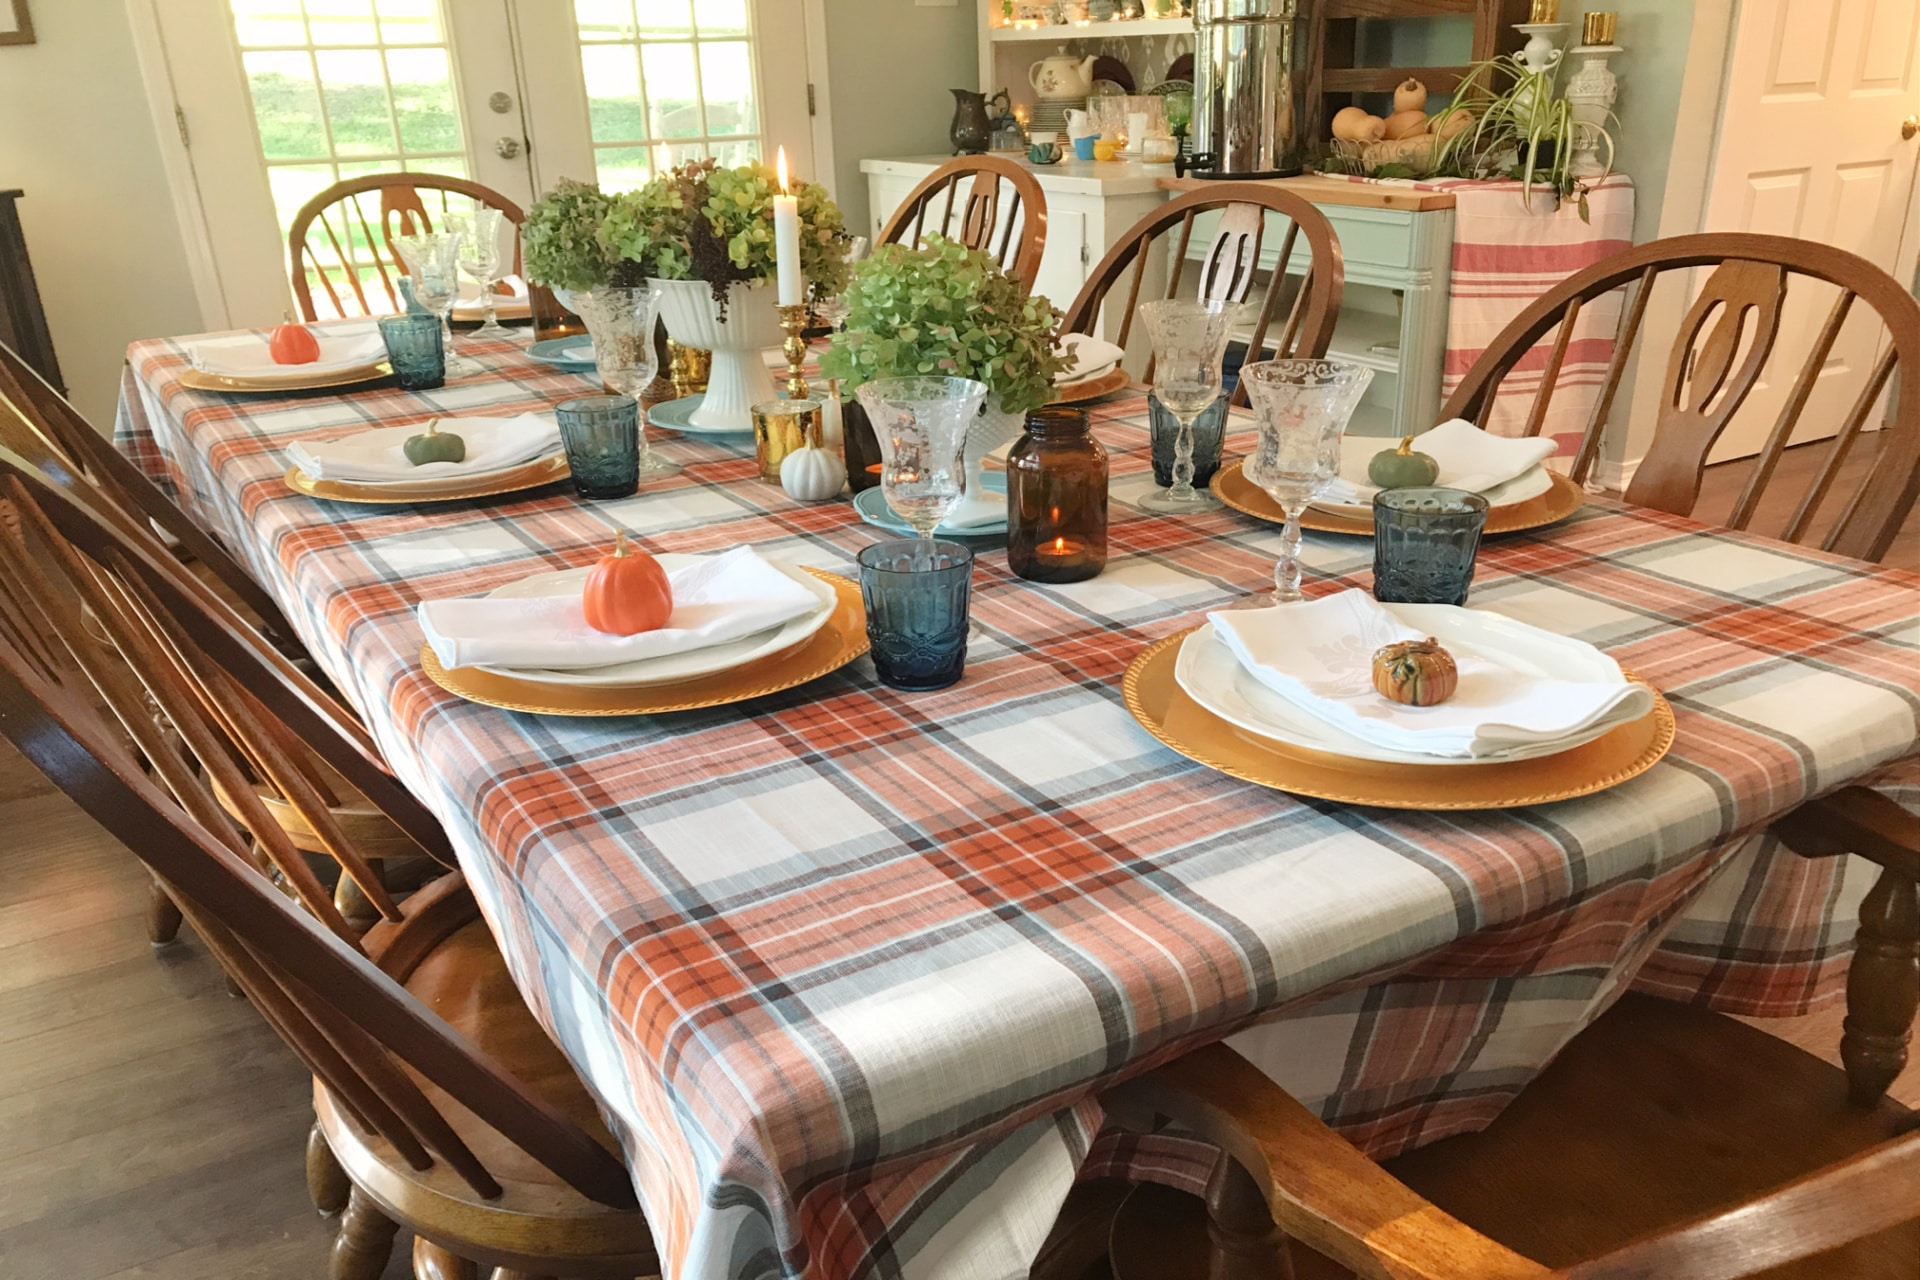 Creating Frugal Eclectic Fall Decor -table decorated for fall with plaid table cloth, gold chargers, white plates and napkins, vintage stemware, floral arrangements, ceramic pumpkins, Life Full and Frugal